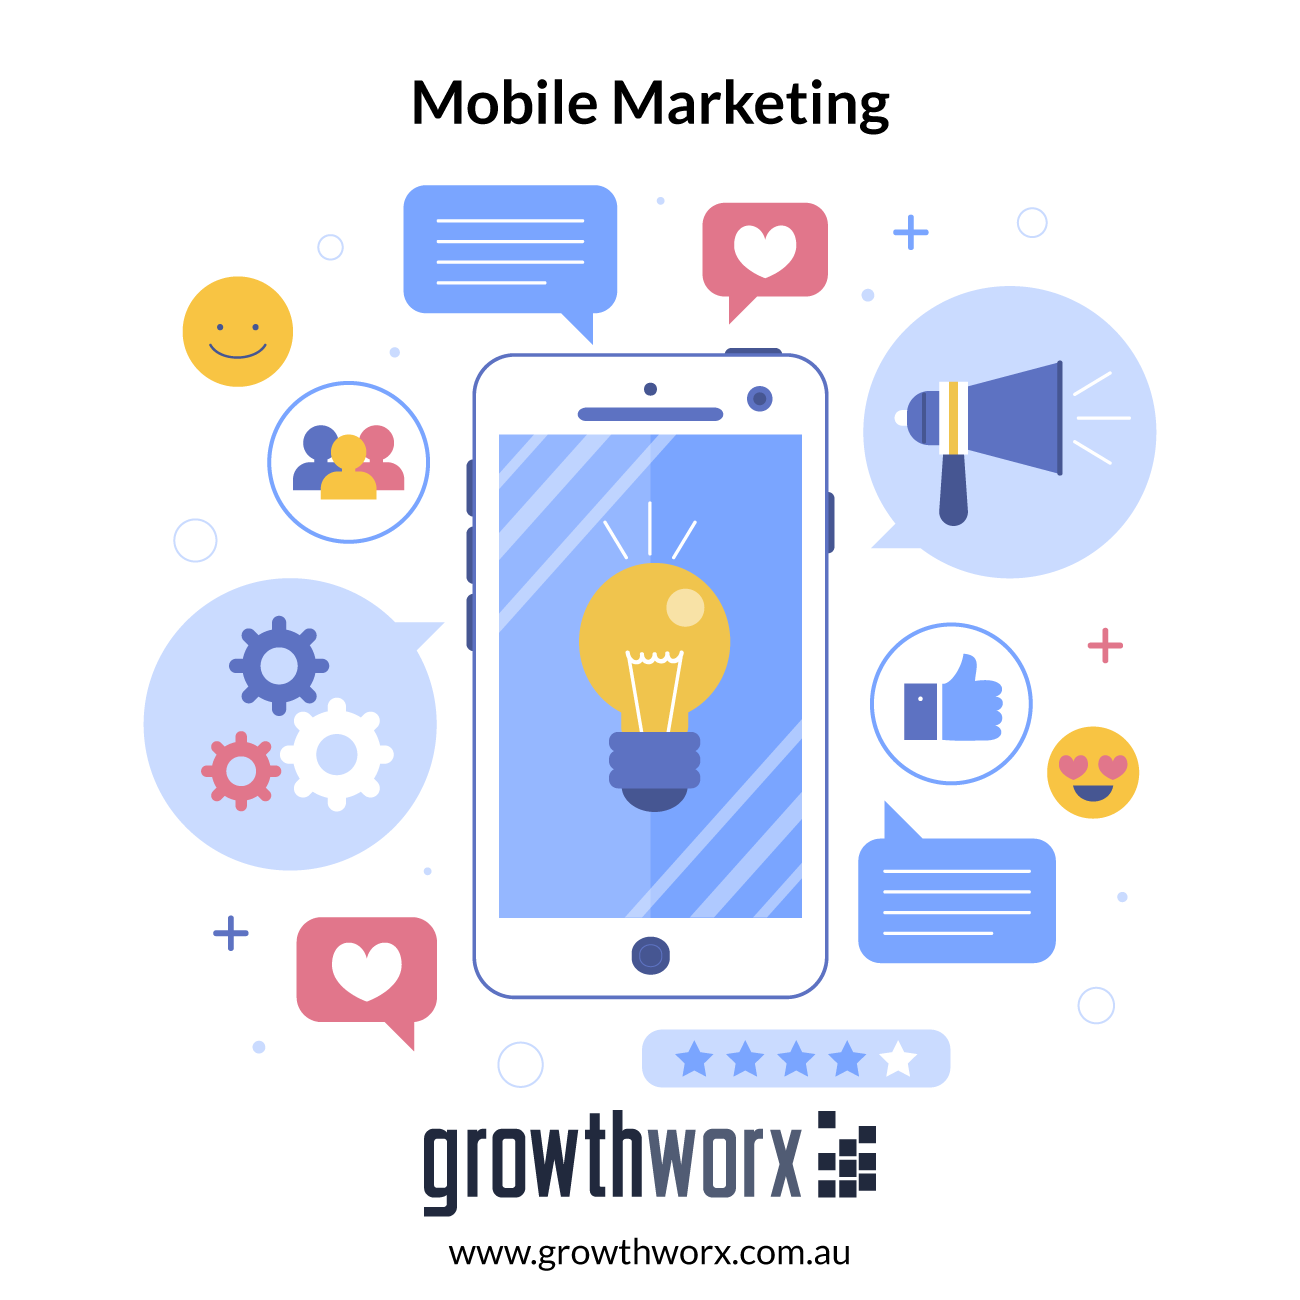 I will best work in mobile marketing 1